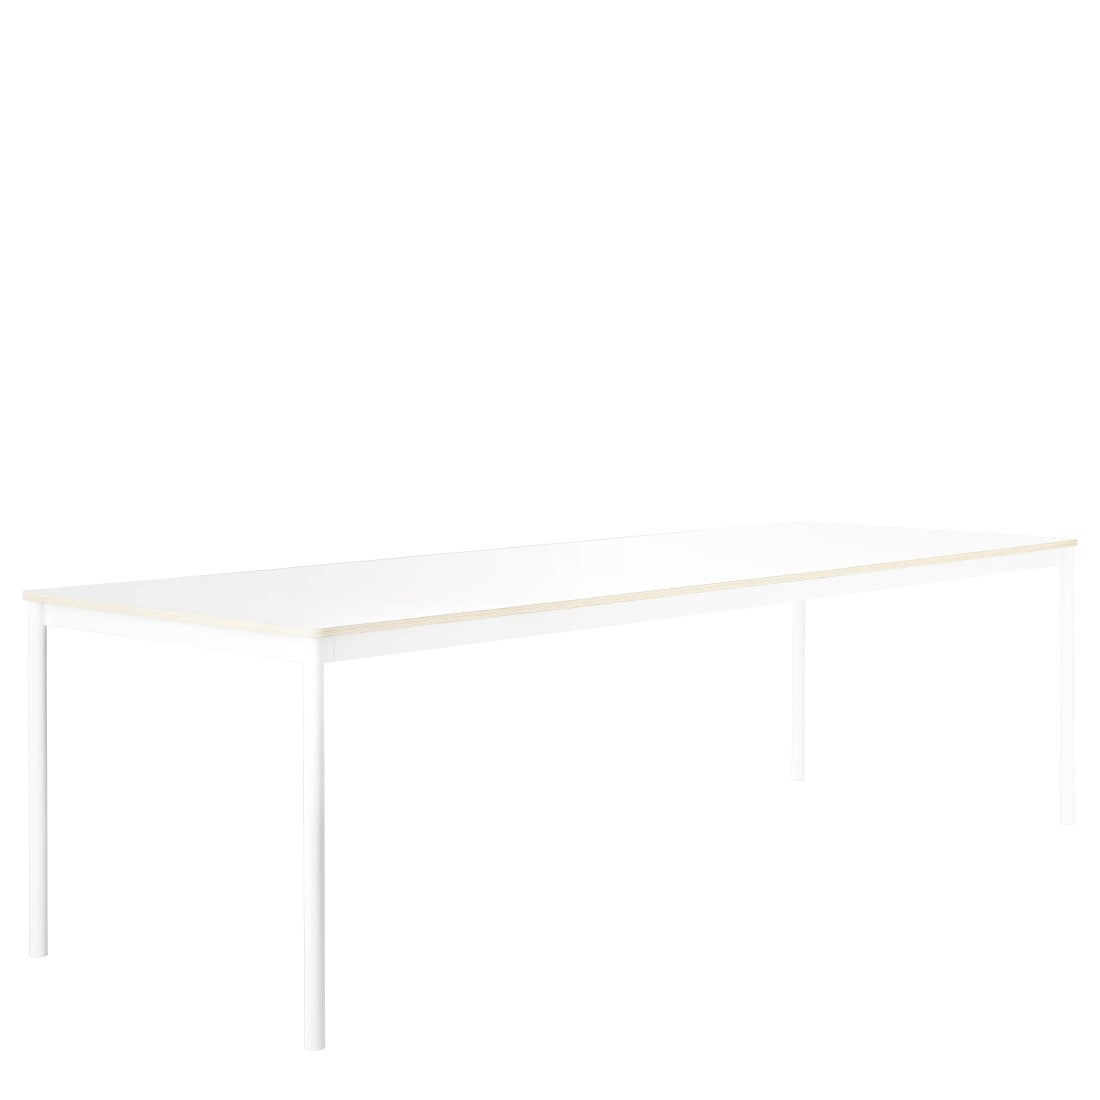 Muuto Base Table Laminaat met Multiplex Randen Wit 250 x 90 cm